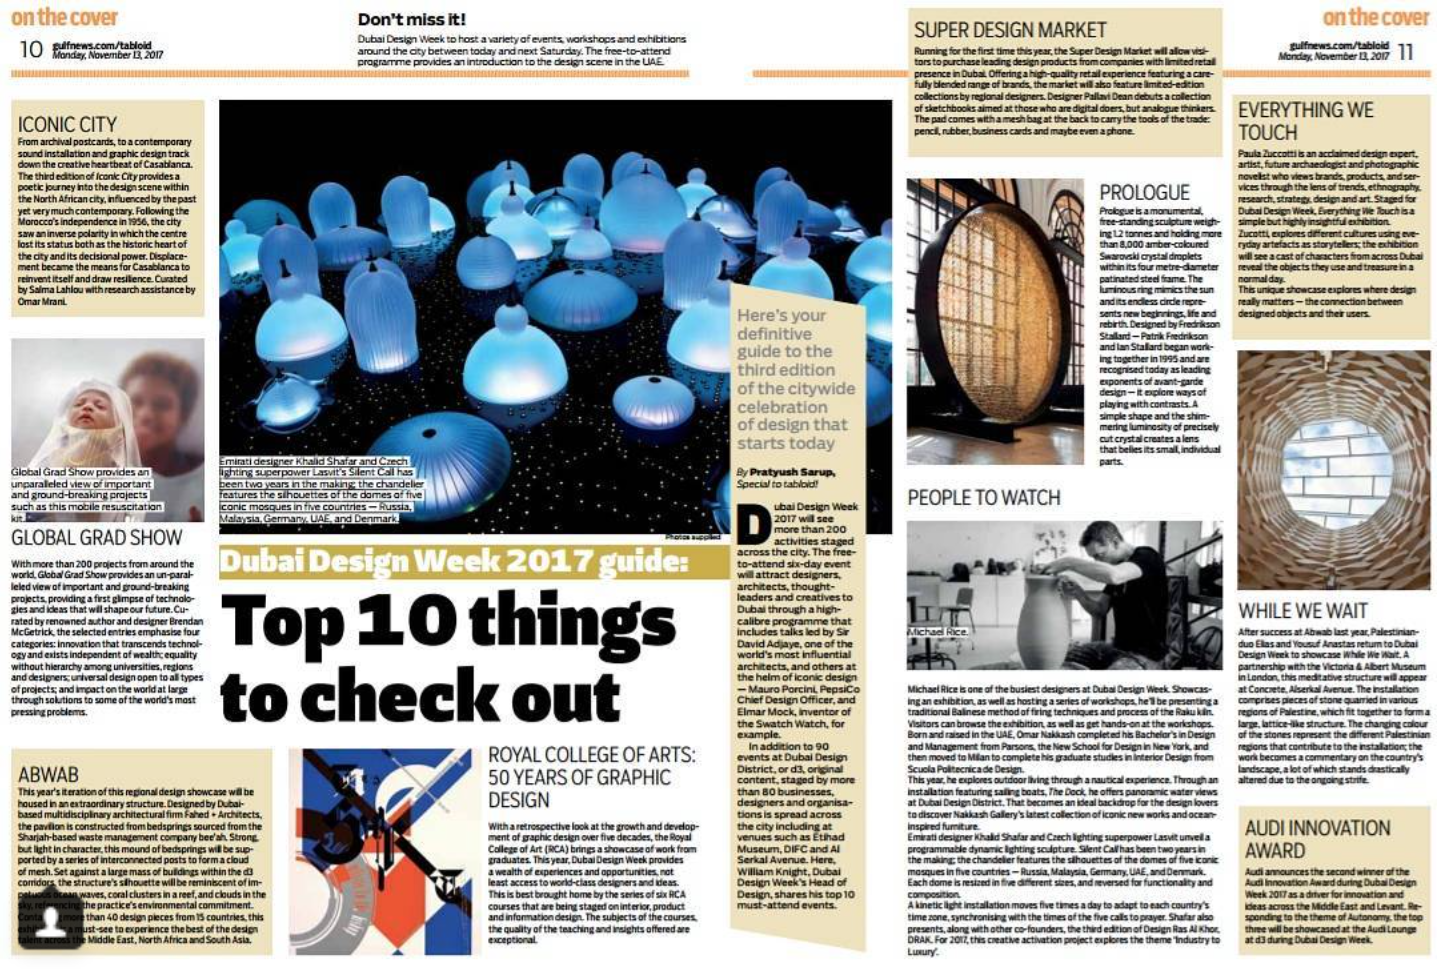 One of Gulf News' 'People to Watch' for Dubai Design Week 2017